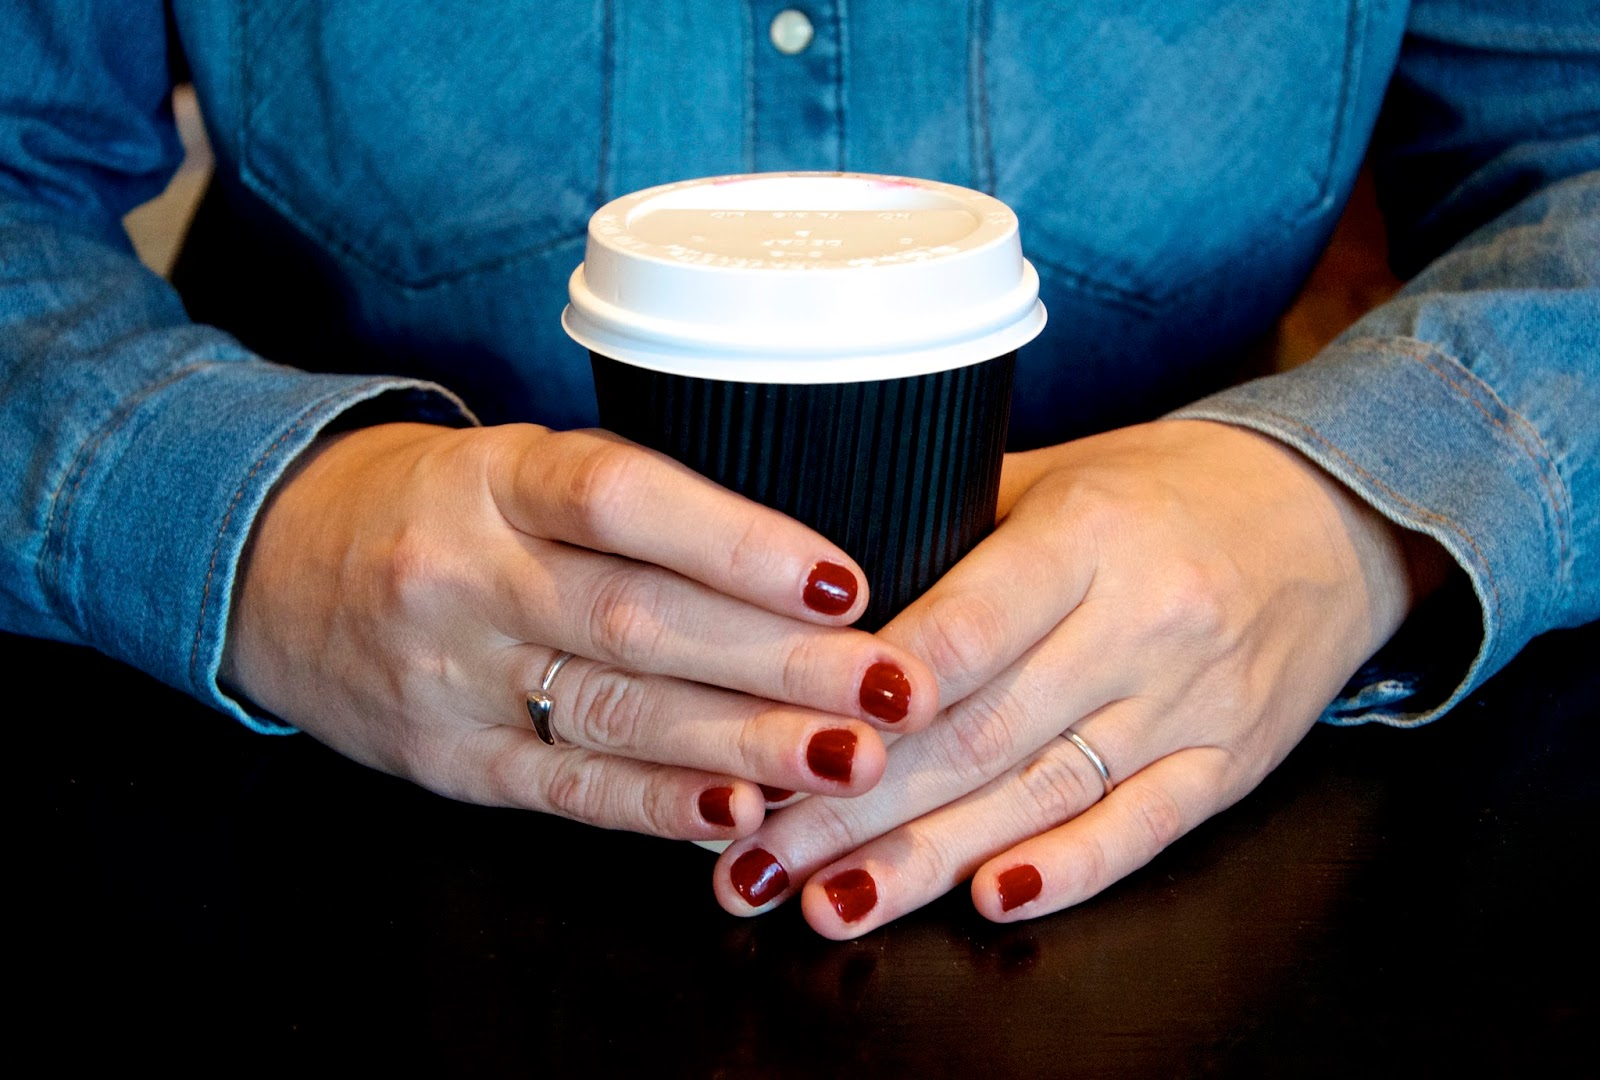 Coffee, red nails and denim shirt